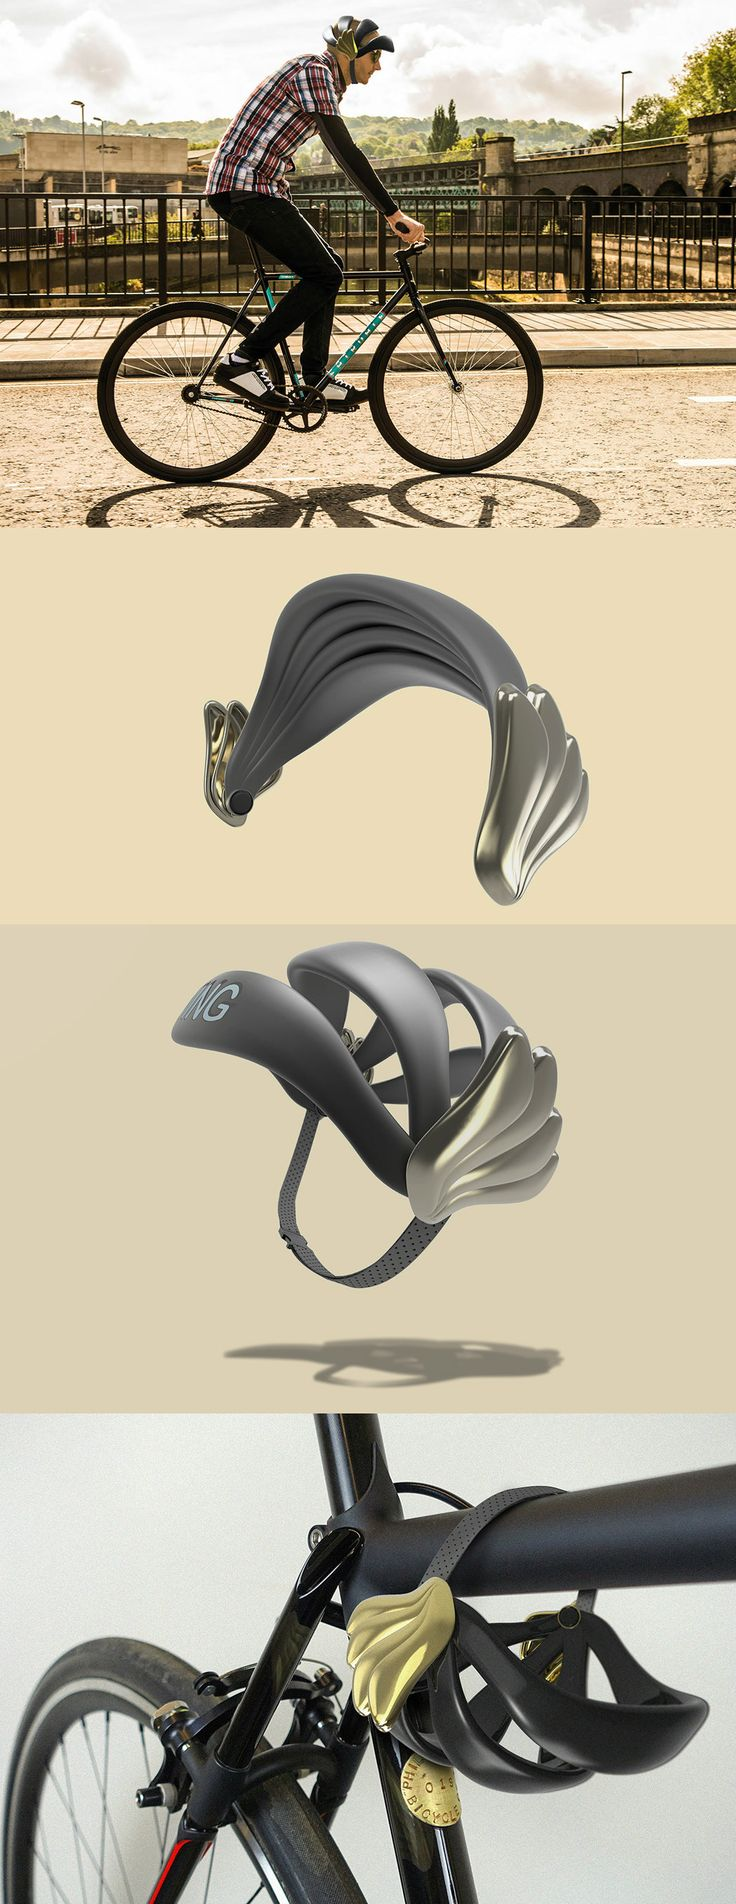 If Hermes Wore a Helmet. Read Full Story at Yanko Design